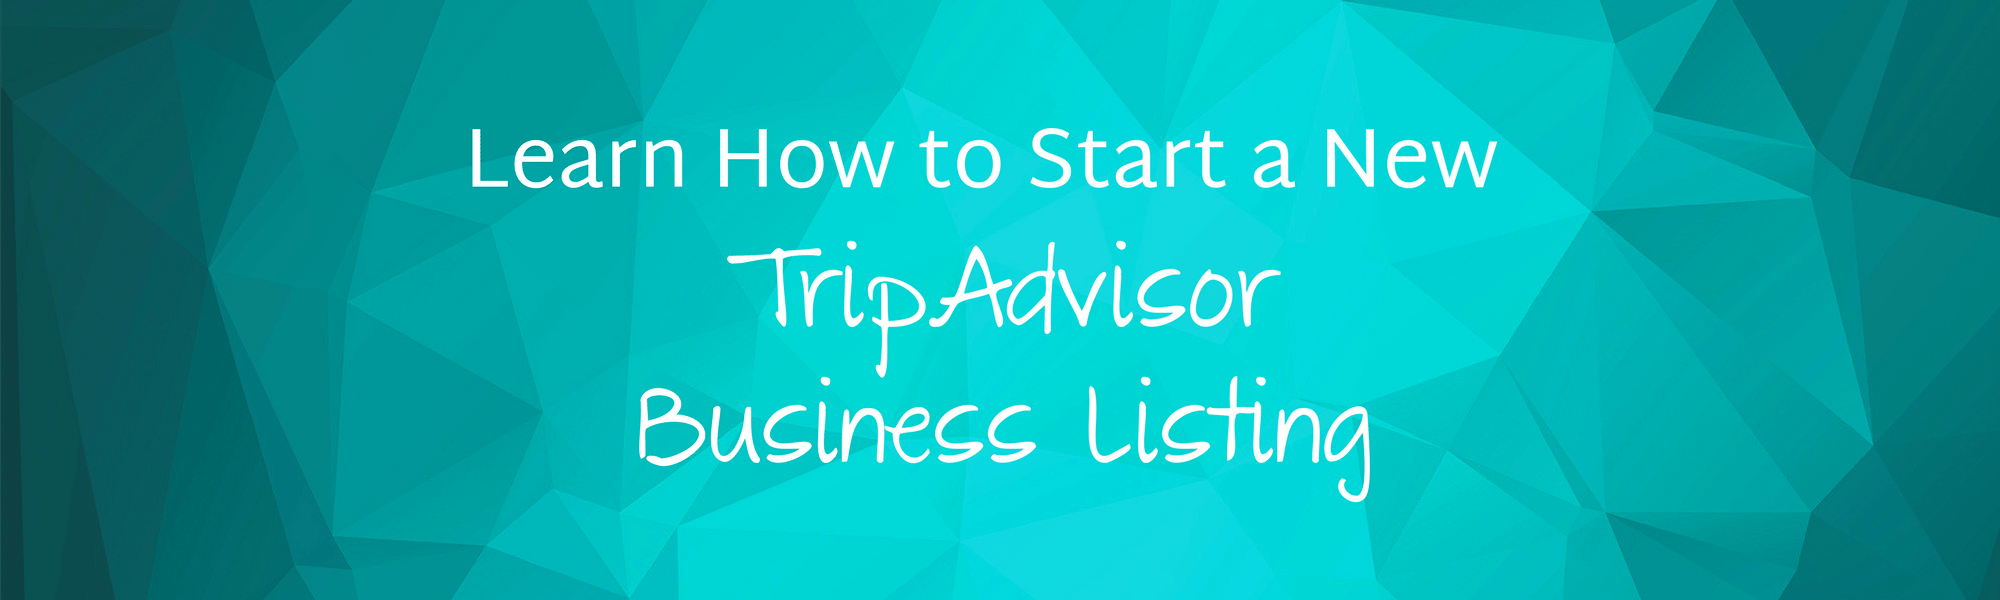 Start a New TripAdvisor Business Listing